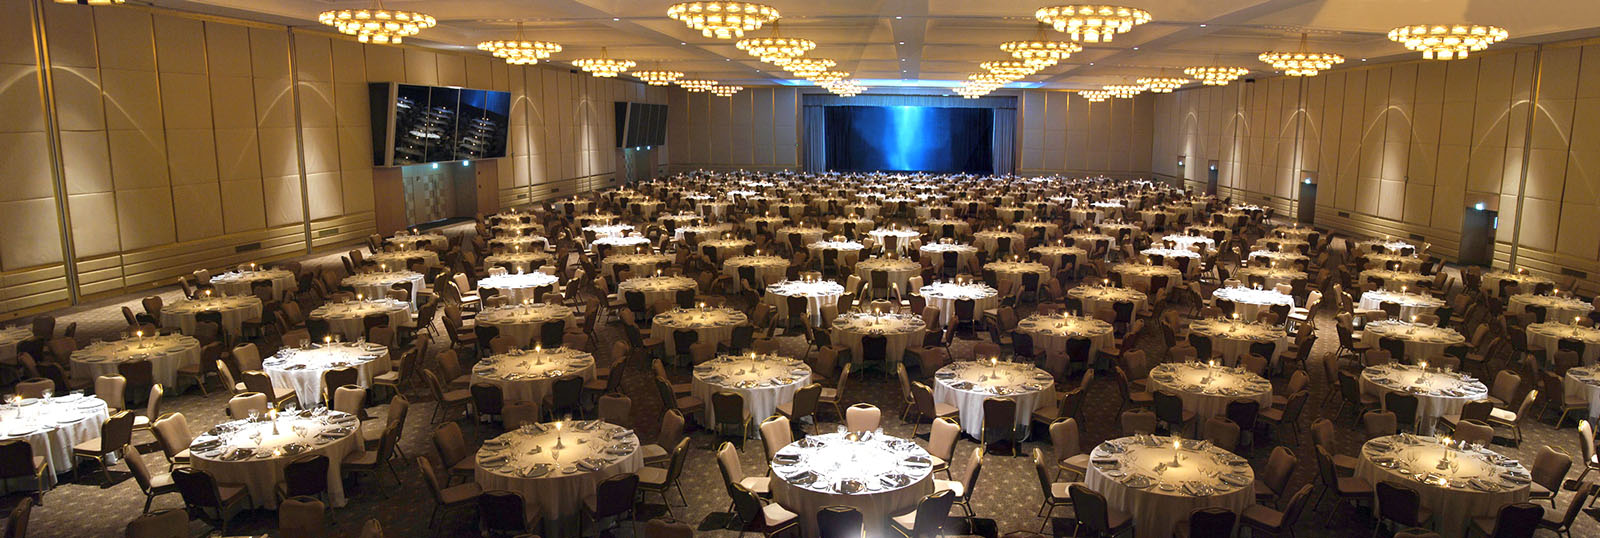 WOW Convention center Safir Meeting rooms at Wow Hotels Group